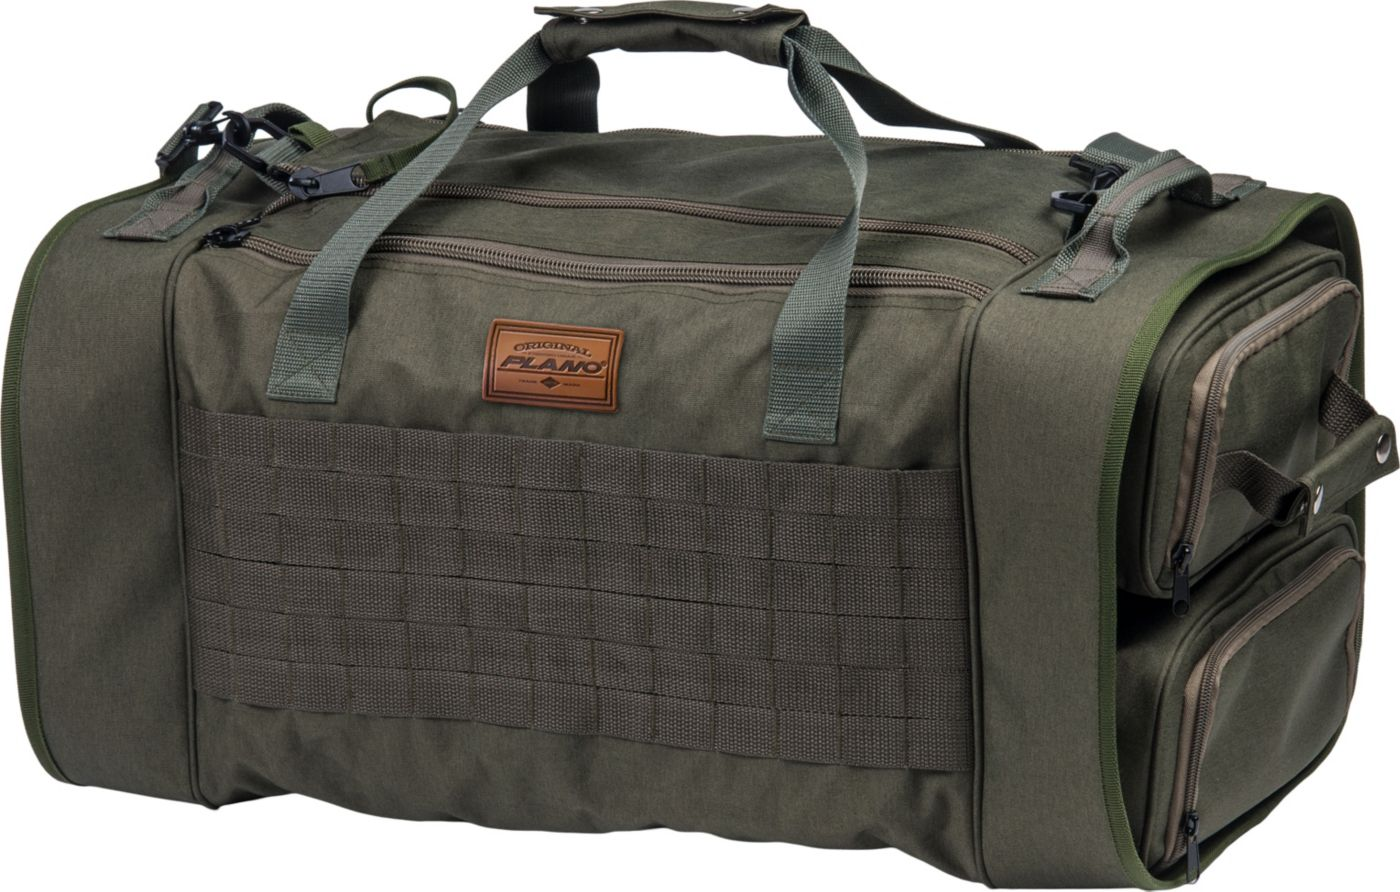 Plano A-Series Duffel Tackle Bag